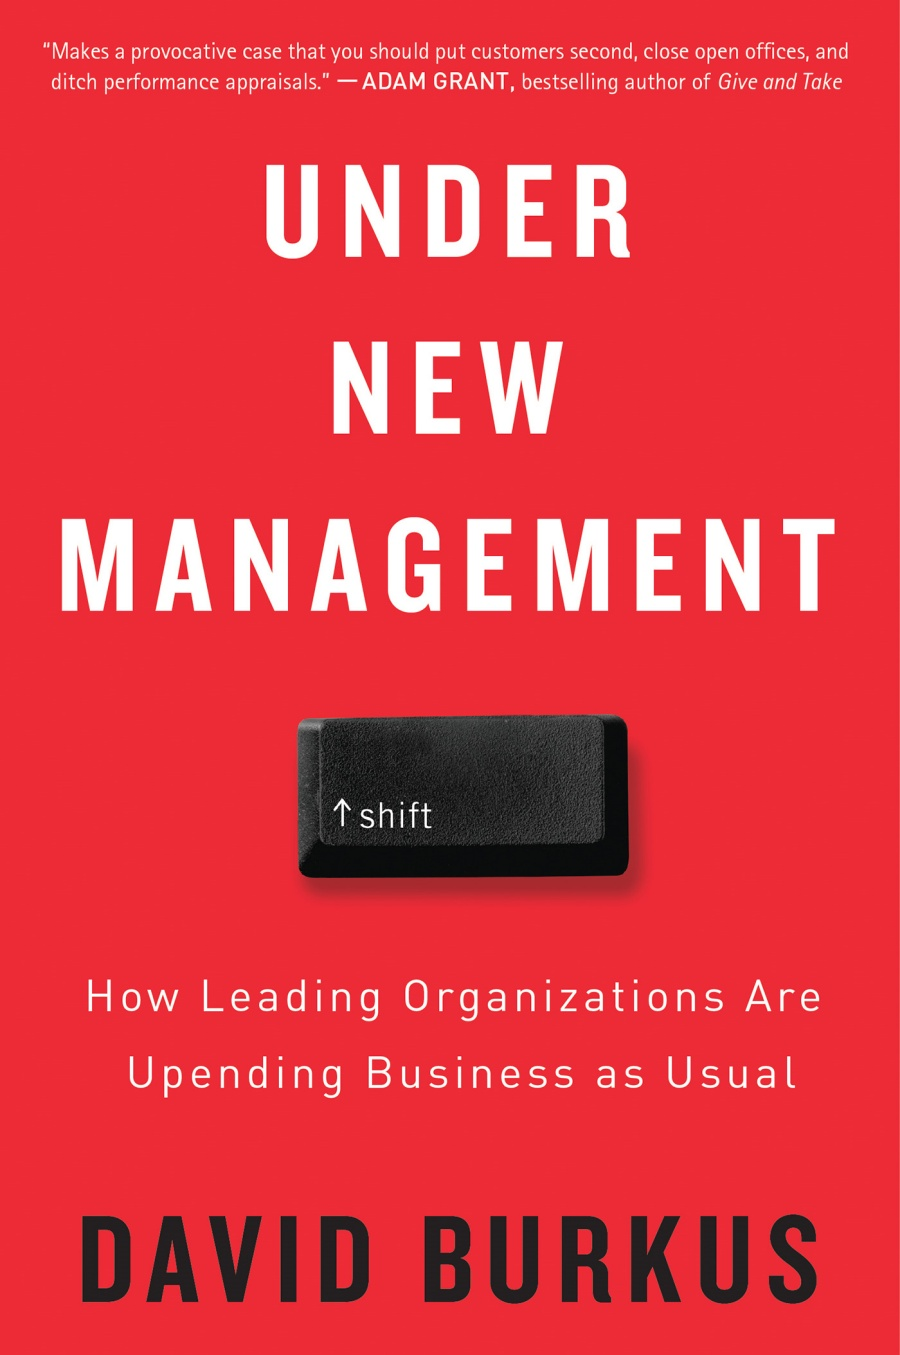 The cover of David Burkus' book Under New Management